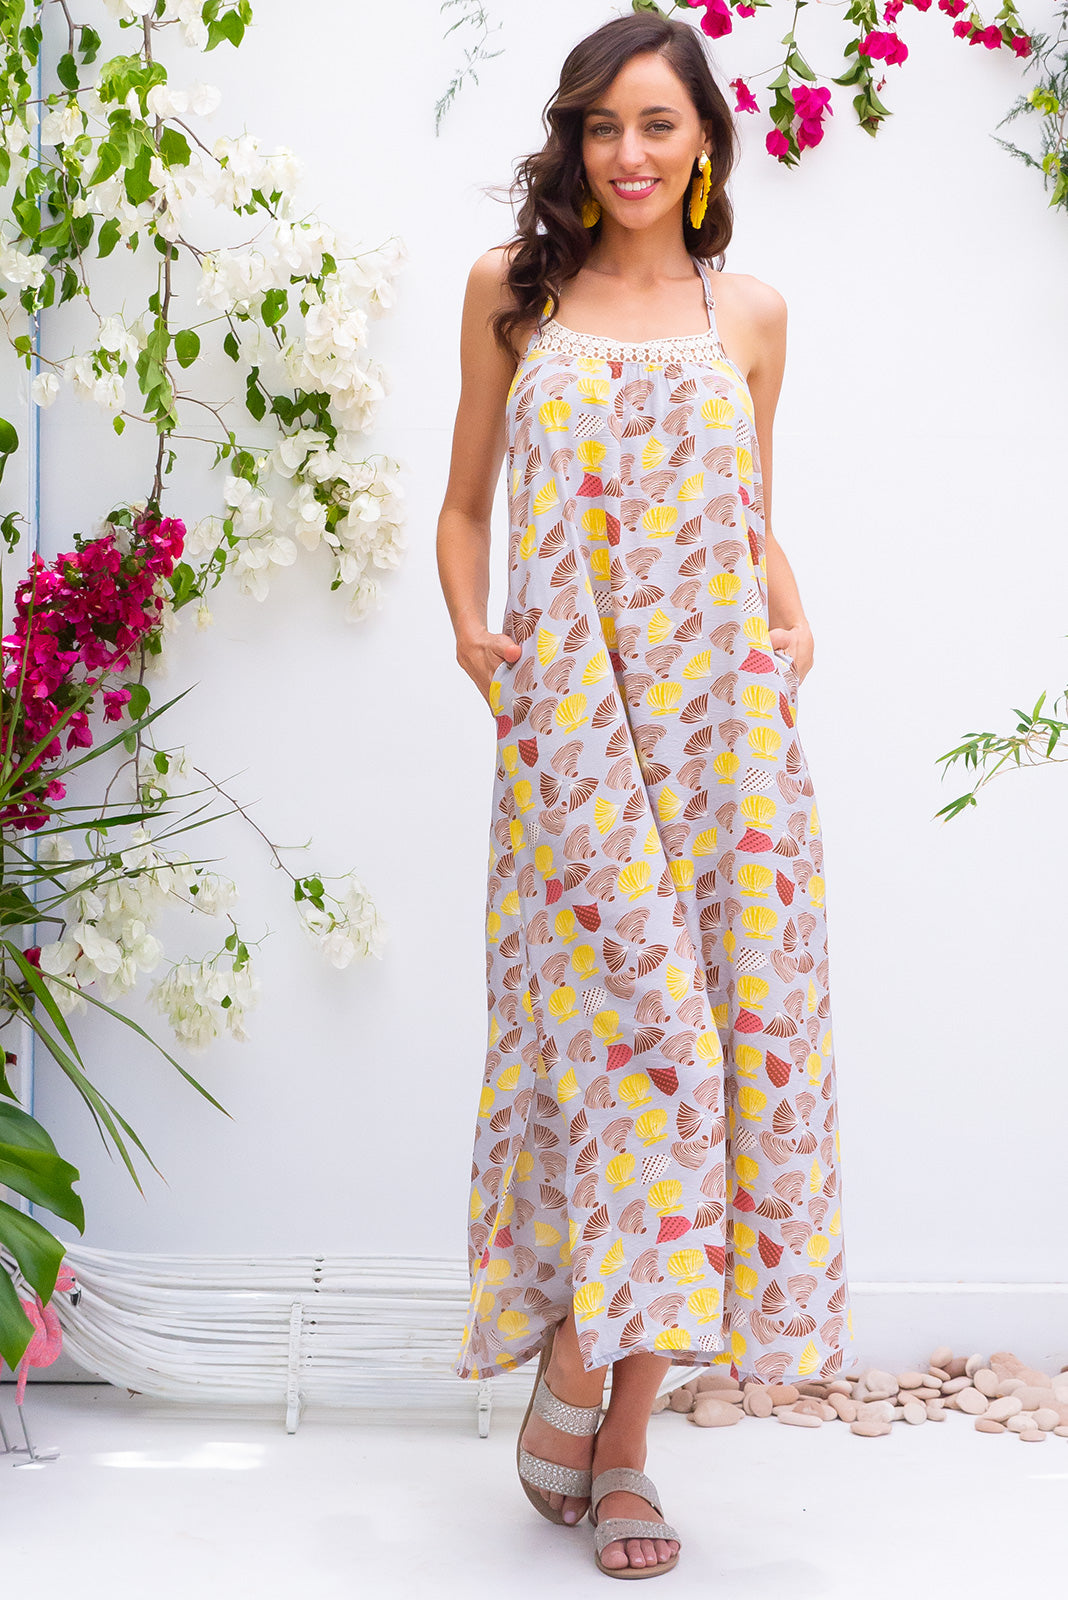 Hibiscus Shelly Beach Maxi Beach Dress in a soft silver and gold shell print print on a rayon nylon blend woven fabric comes with adjustable straps and a plaited belt